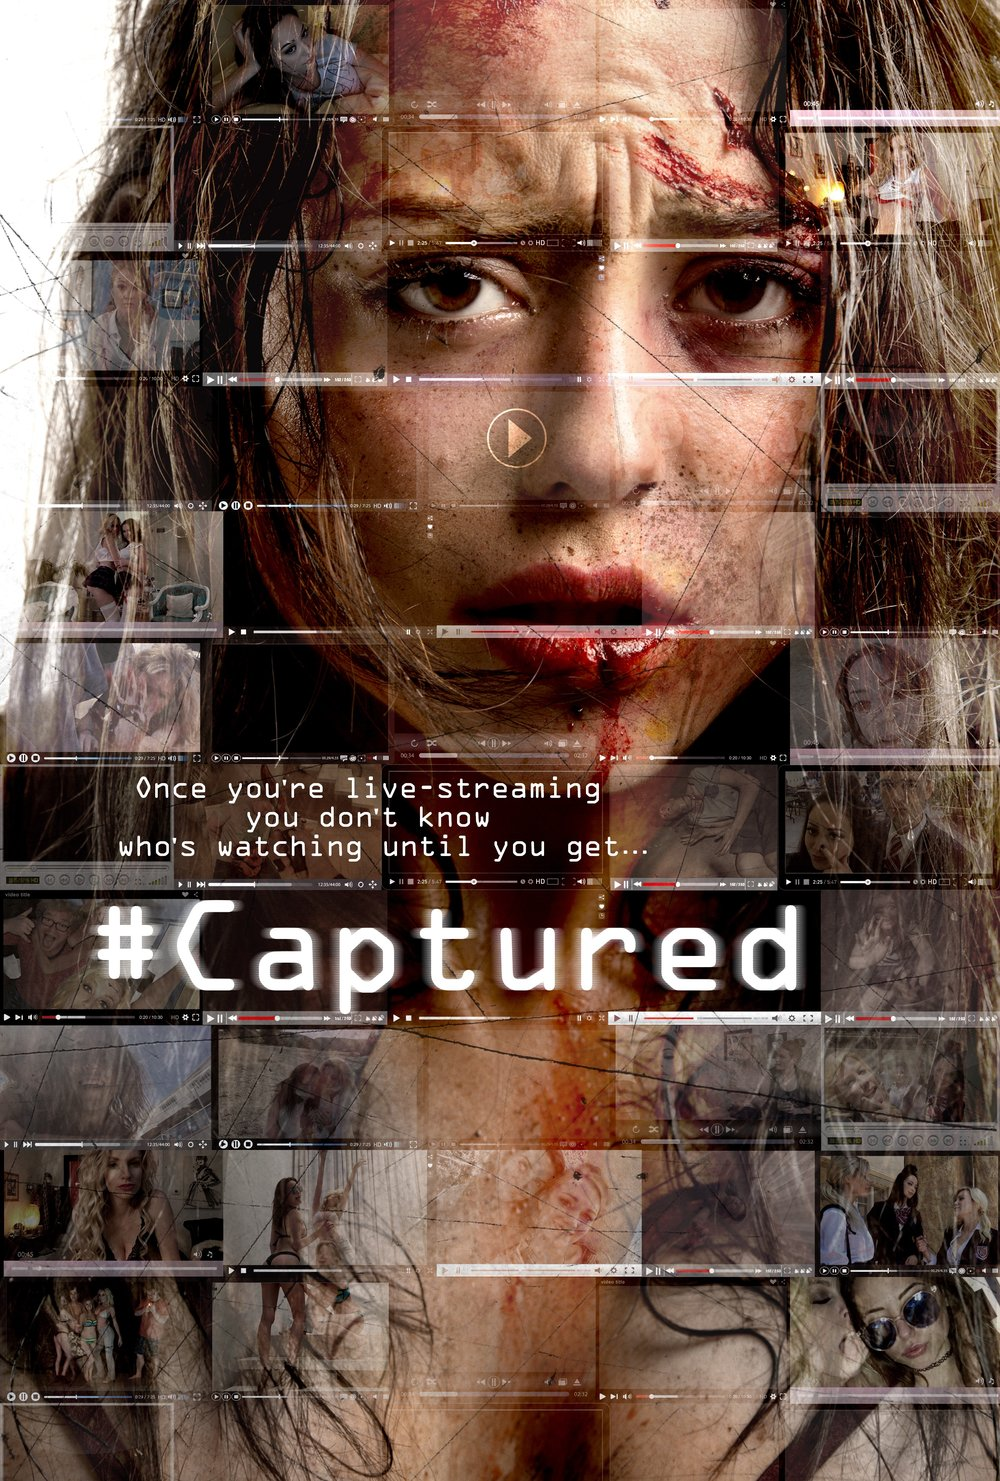 #Captured   A few privileged high school kids run an illicit chat room livestreaming their drug fueled sex parties to paying viewers on the internet. Little do they know there's a murderous zealot on a mission to rid the internet of sin.